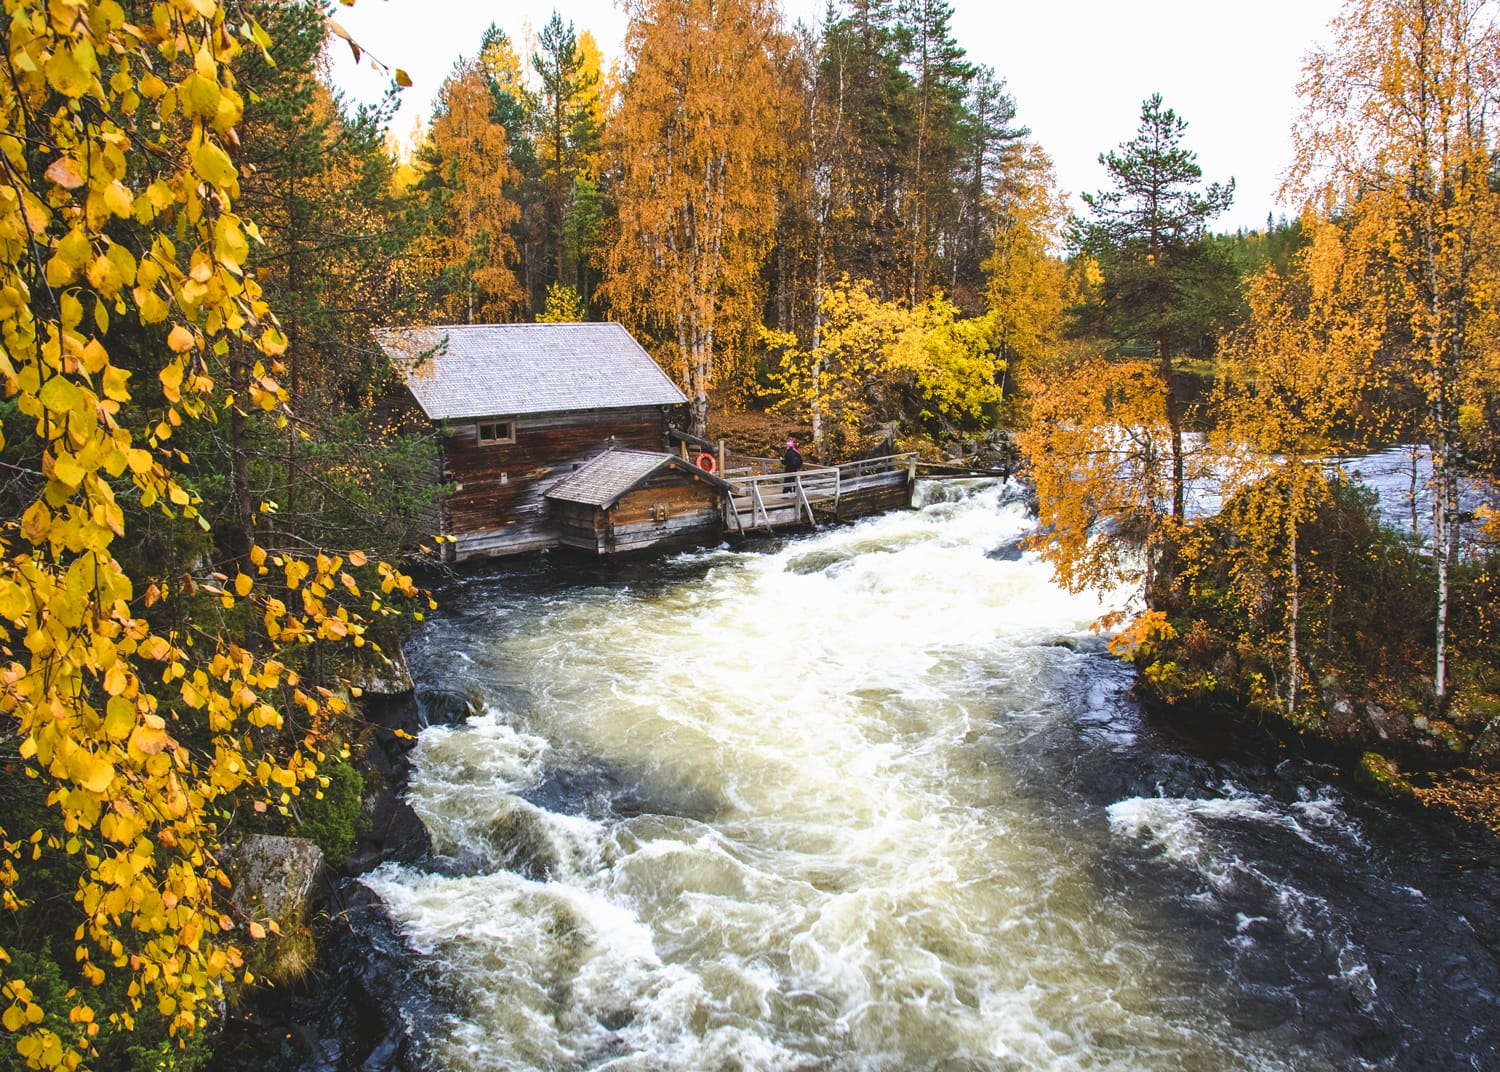 A public rest cabin in Karhunkierros trail during yellow autumn leaves in Oulanka National Park. Lapland, Finland.